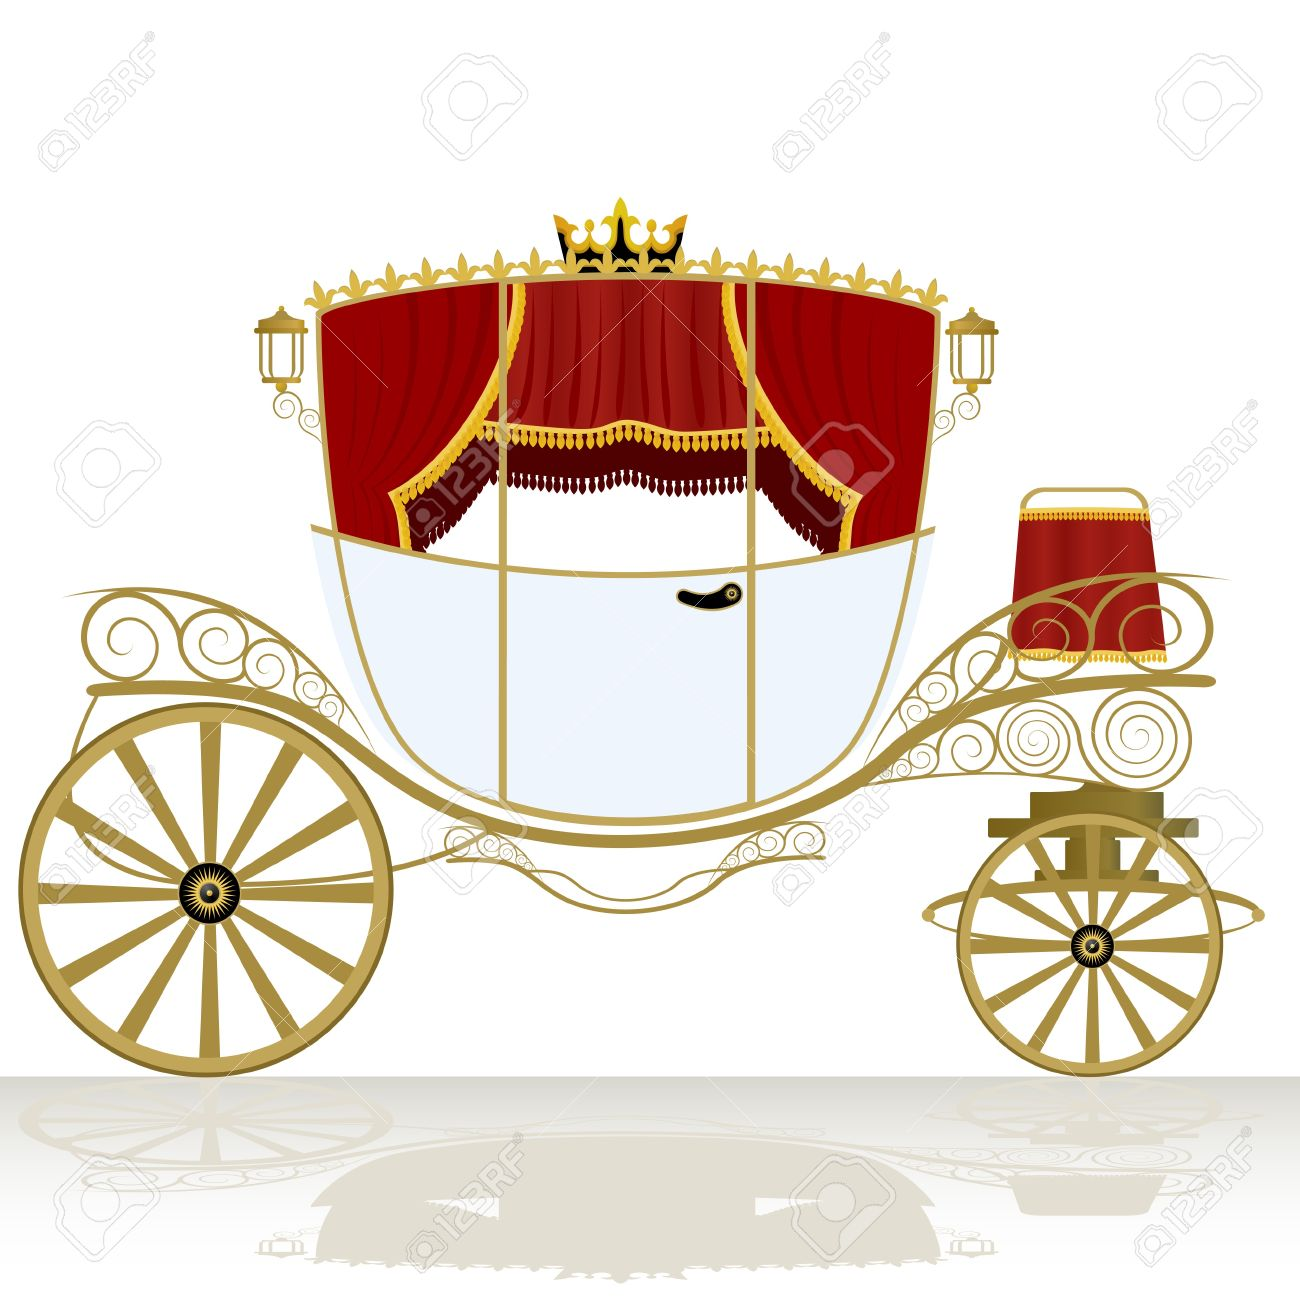 Old transportation pencil and. Carriage clipart vector